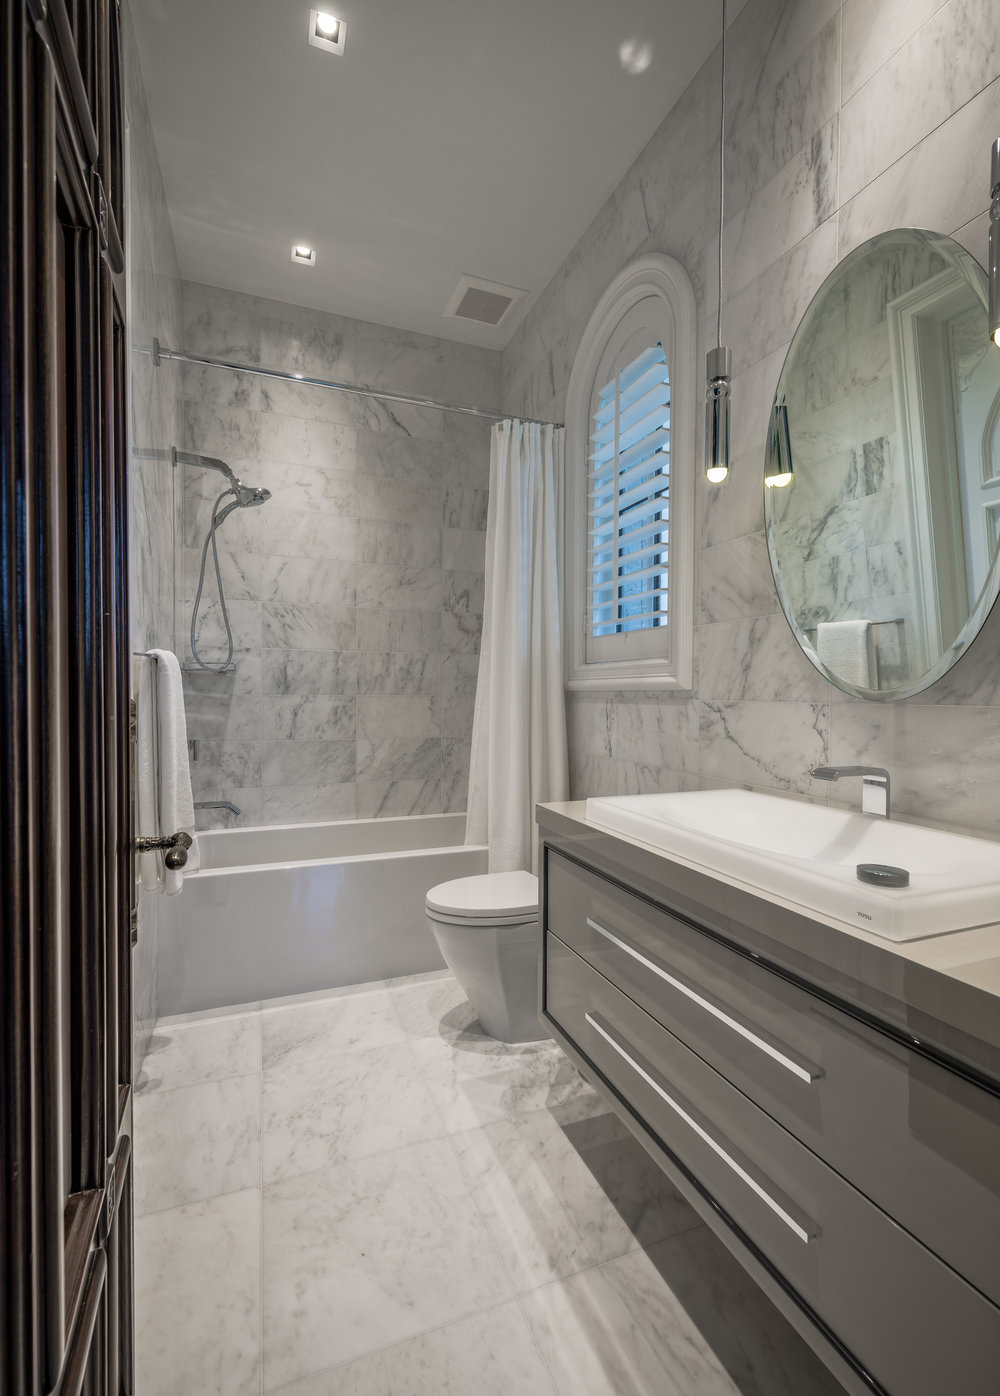 Private Beachfront Estate Guest Bathroom Premium custom bath with exquisite features throughout including Statuary marble, custom high-gloss vanity cabinet, and an illuminated LED sink.